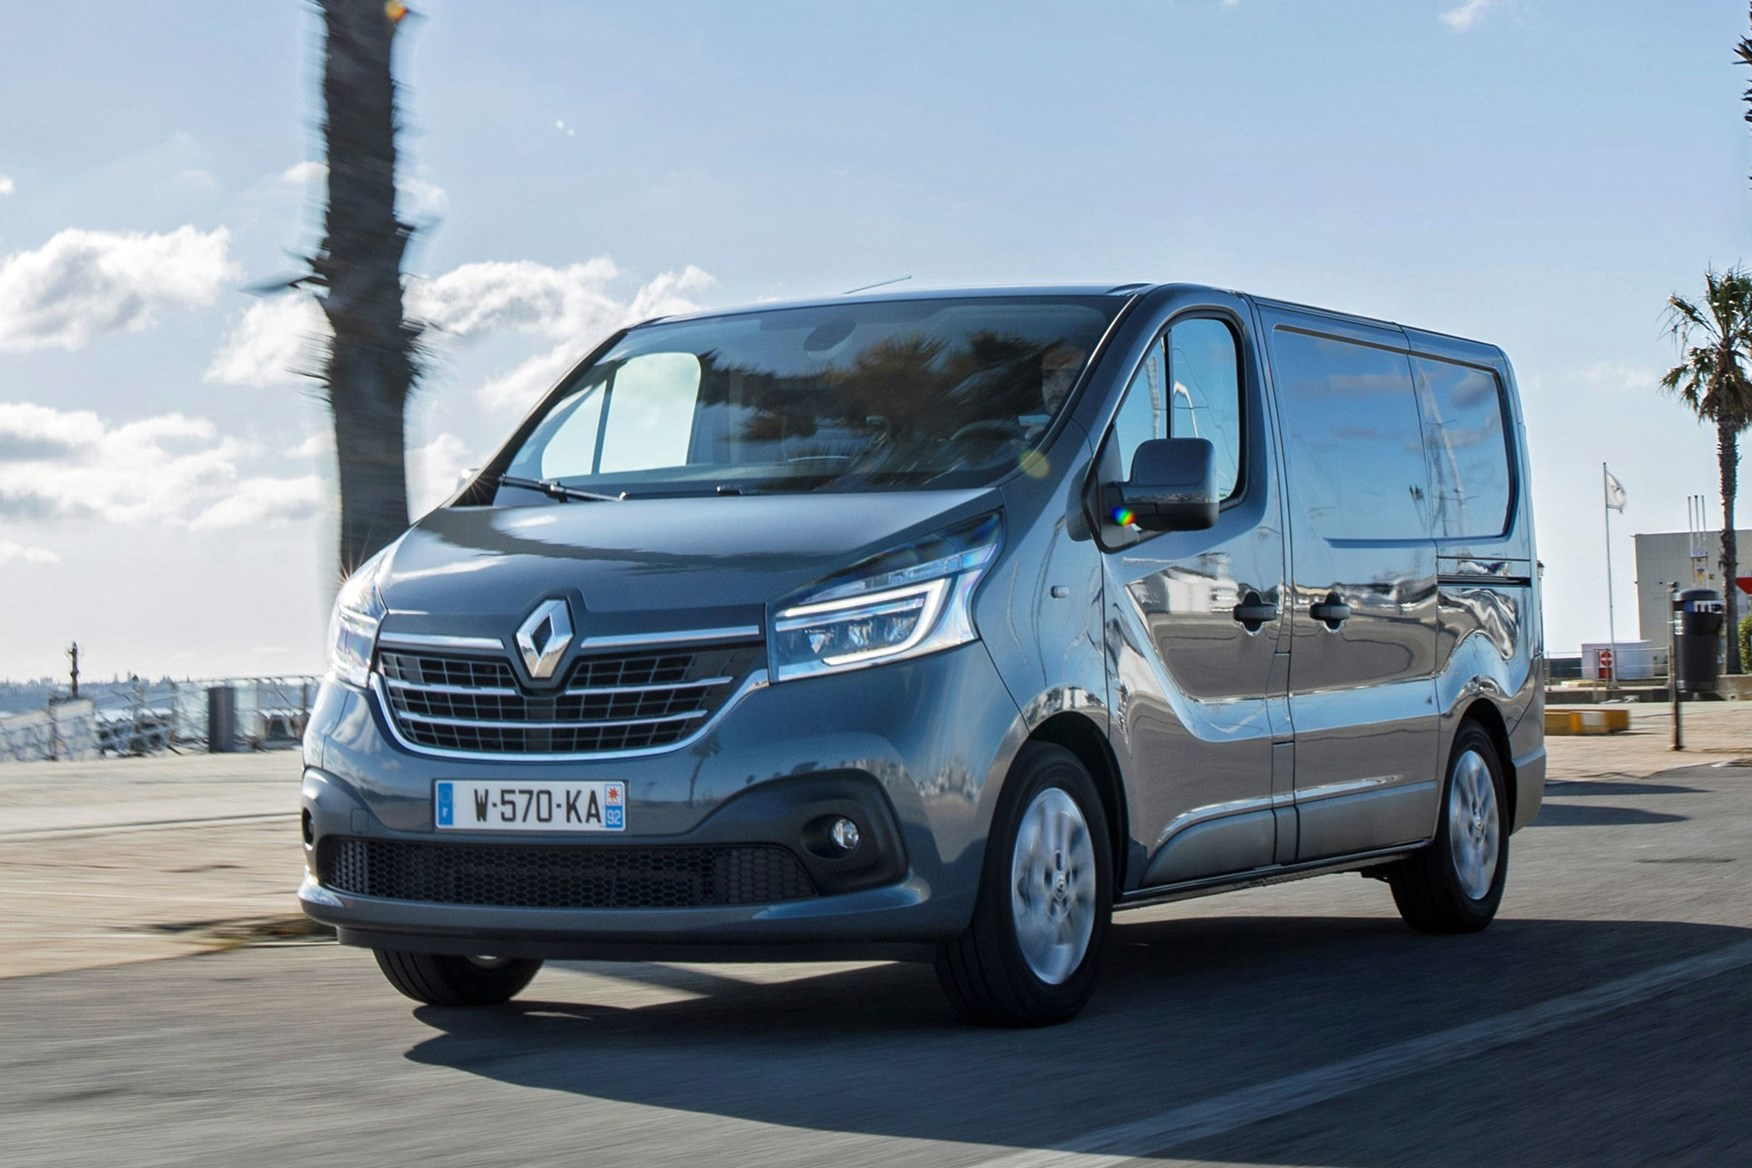 Renault Trafic review - 2019 facelift, front view, driving, grey